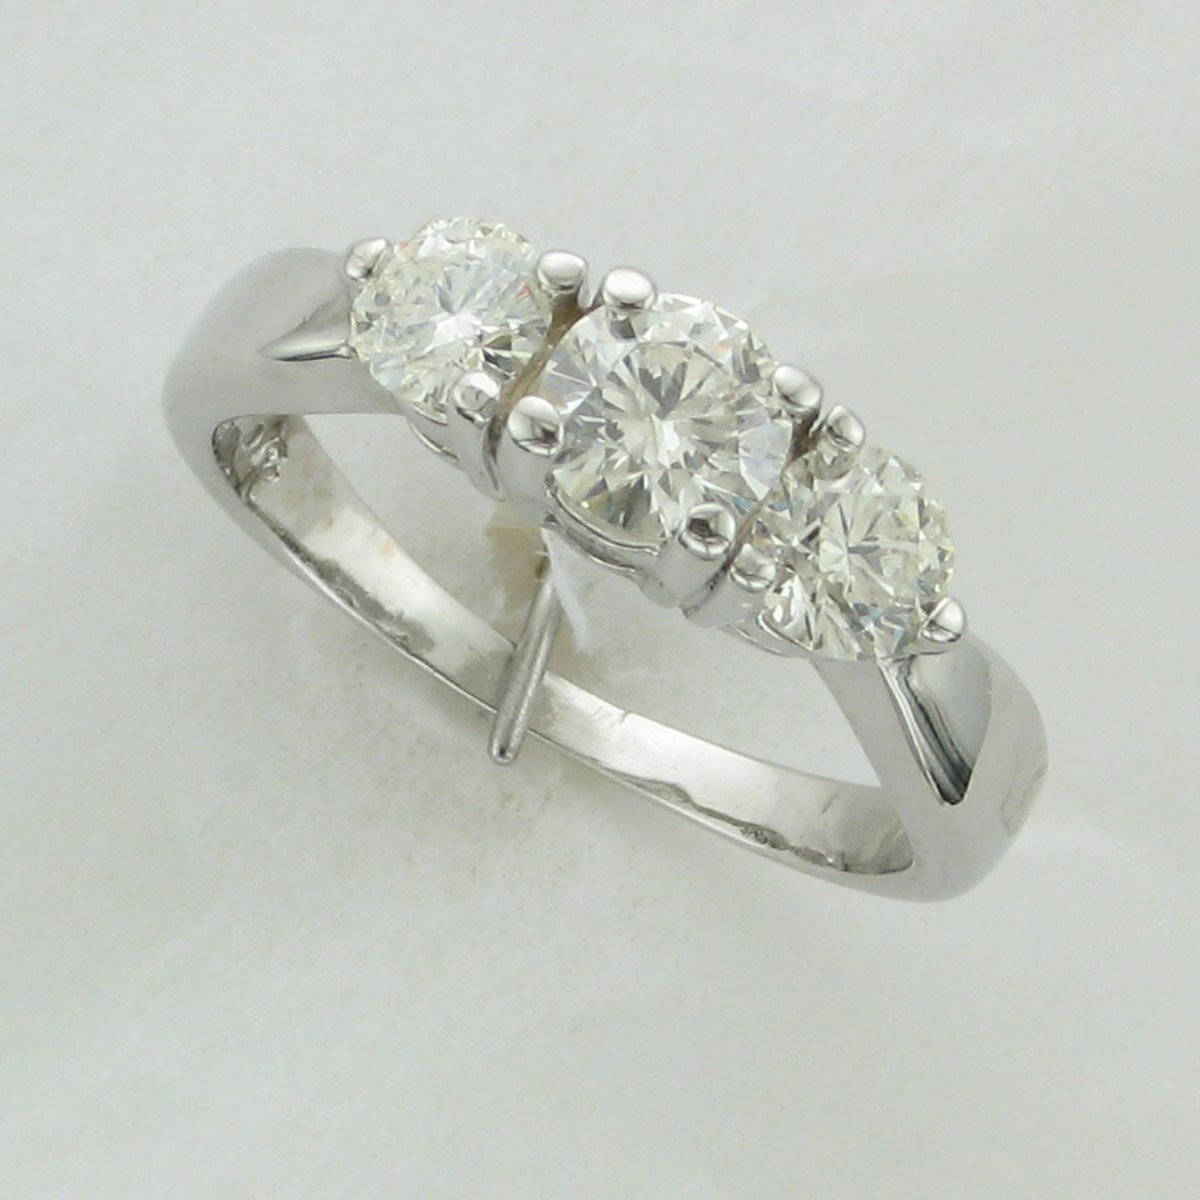 1.25tcw Diamond 3 Stone Ring set in 14K White Gold